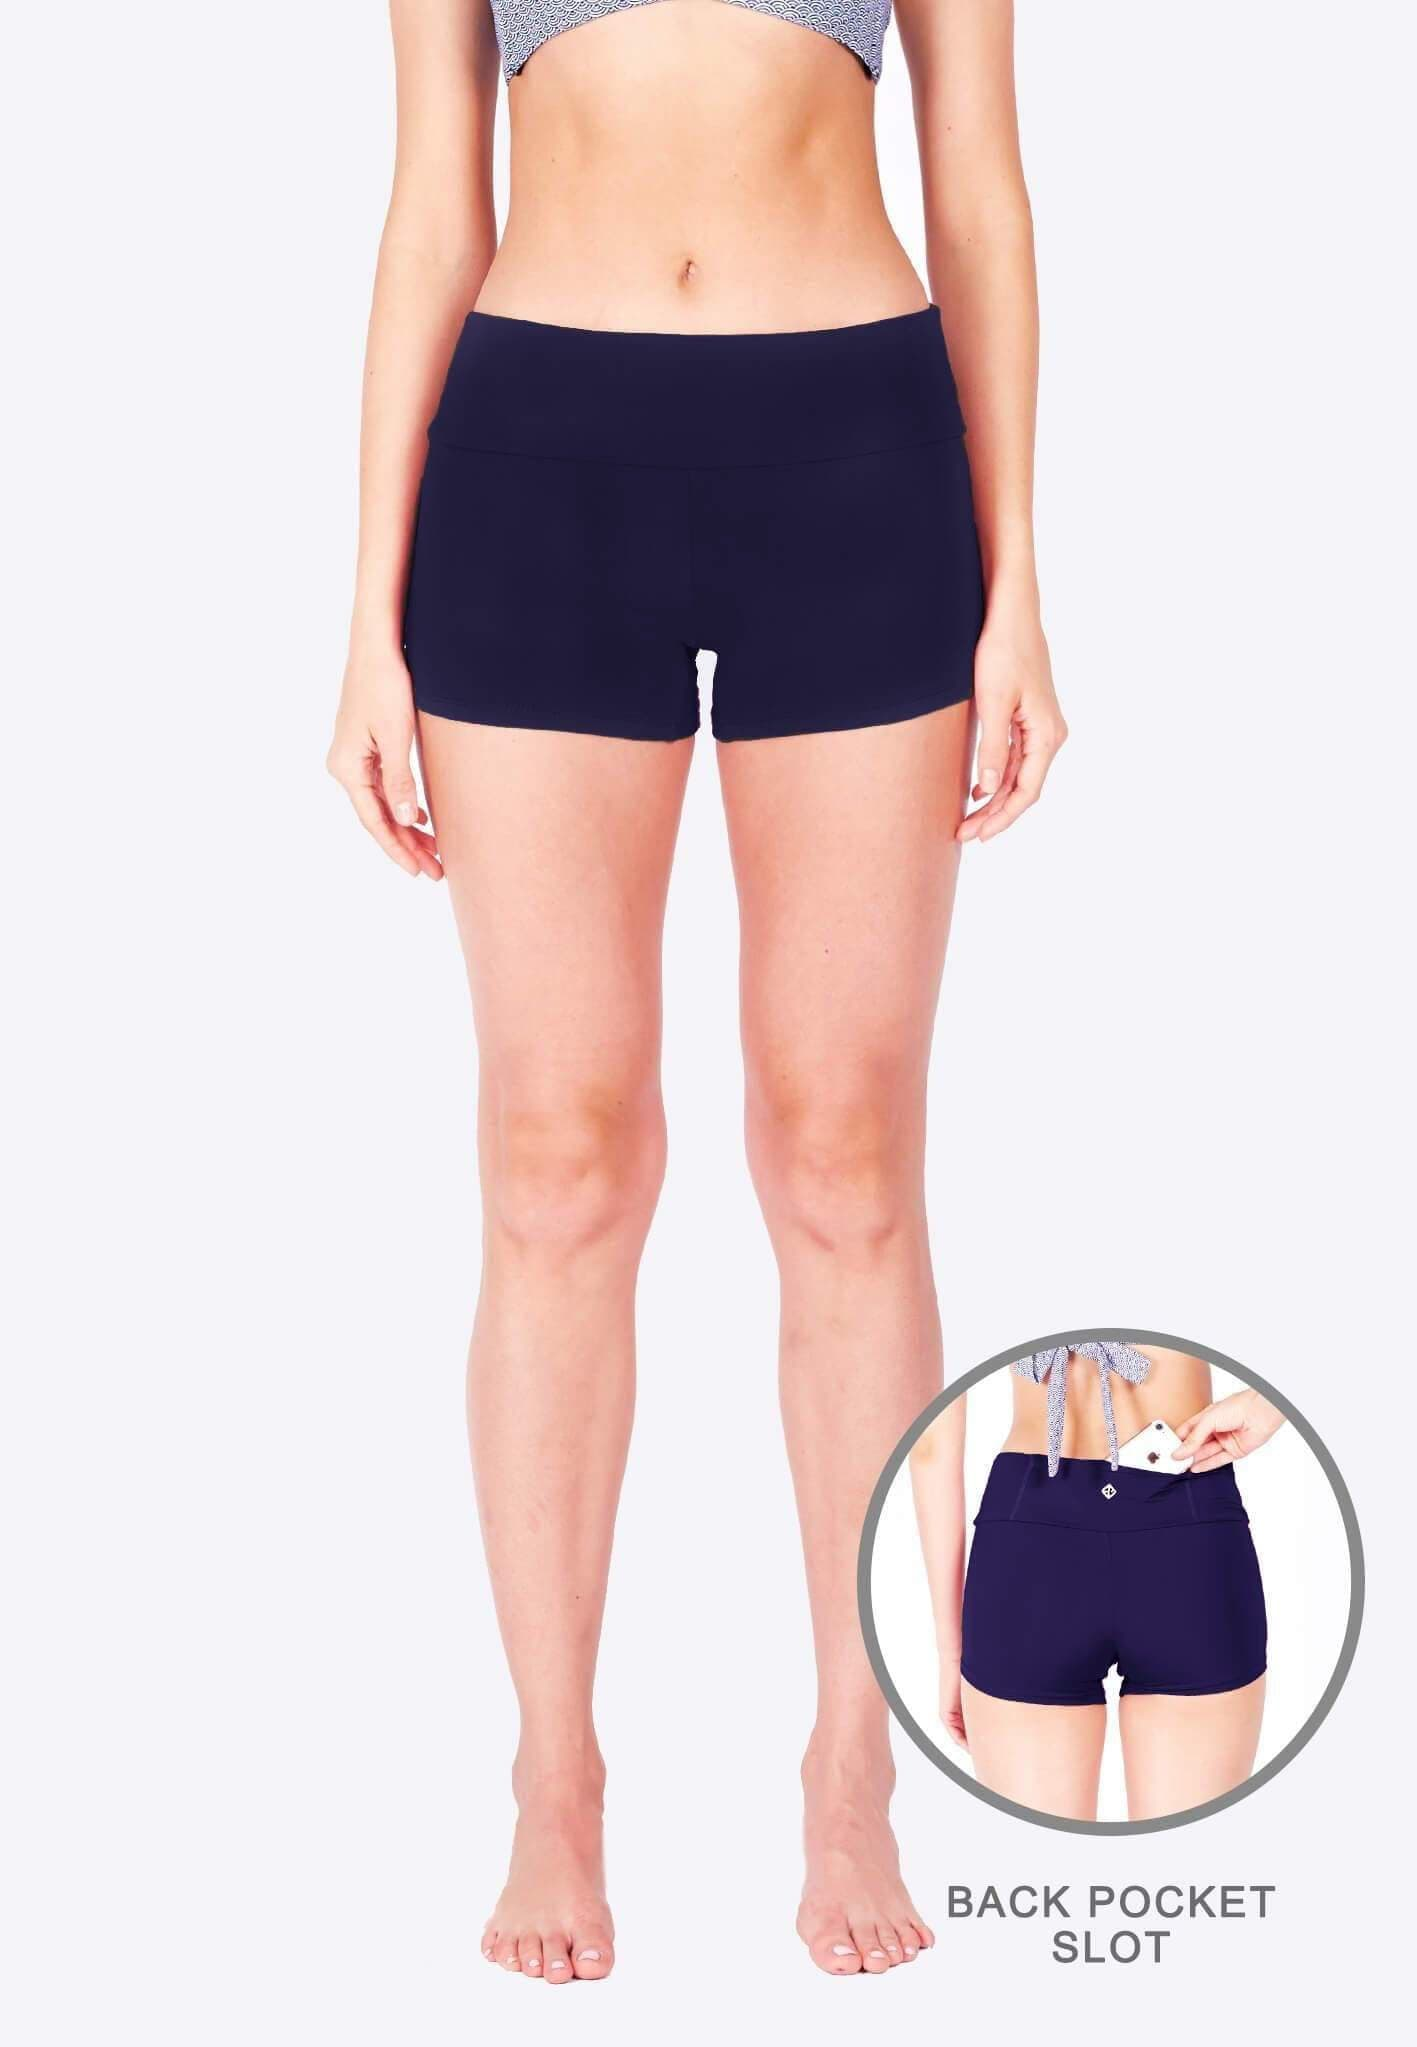 FUNFIT Boyshorts (Navy) | Athleiswim™ | XS - 2XL